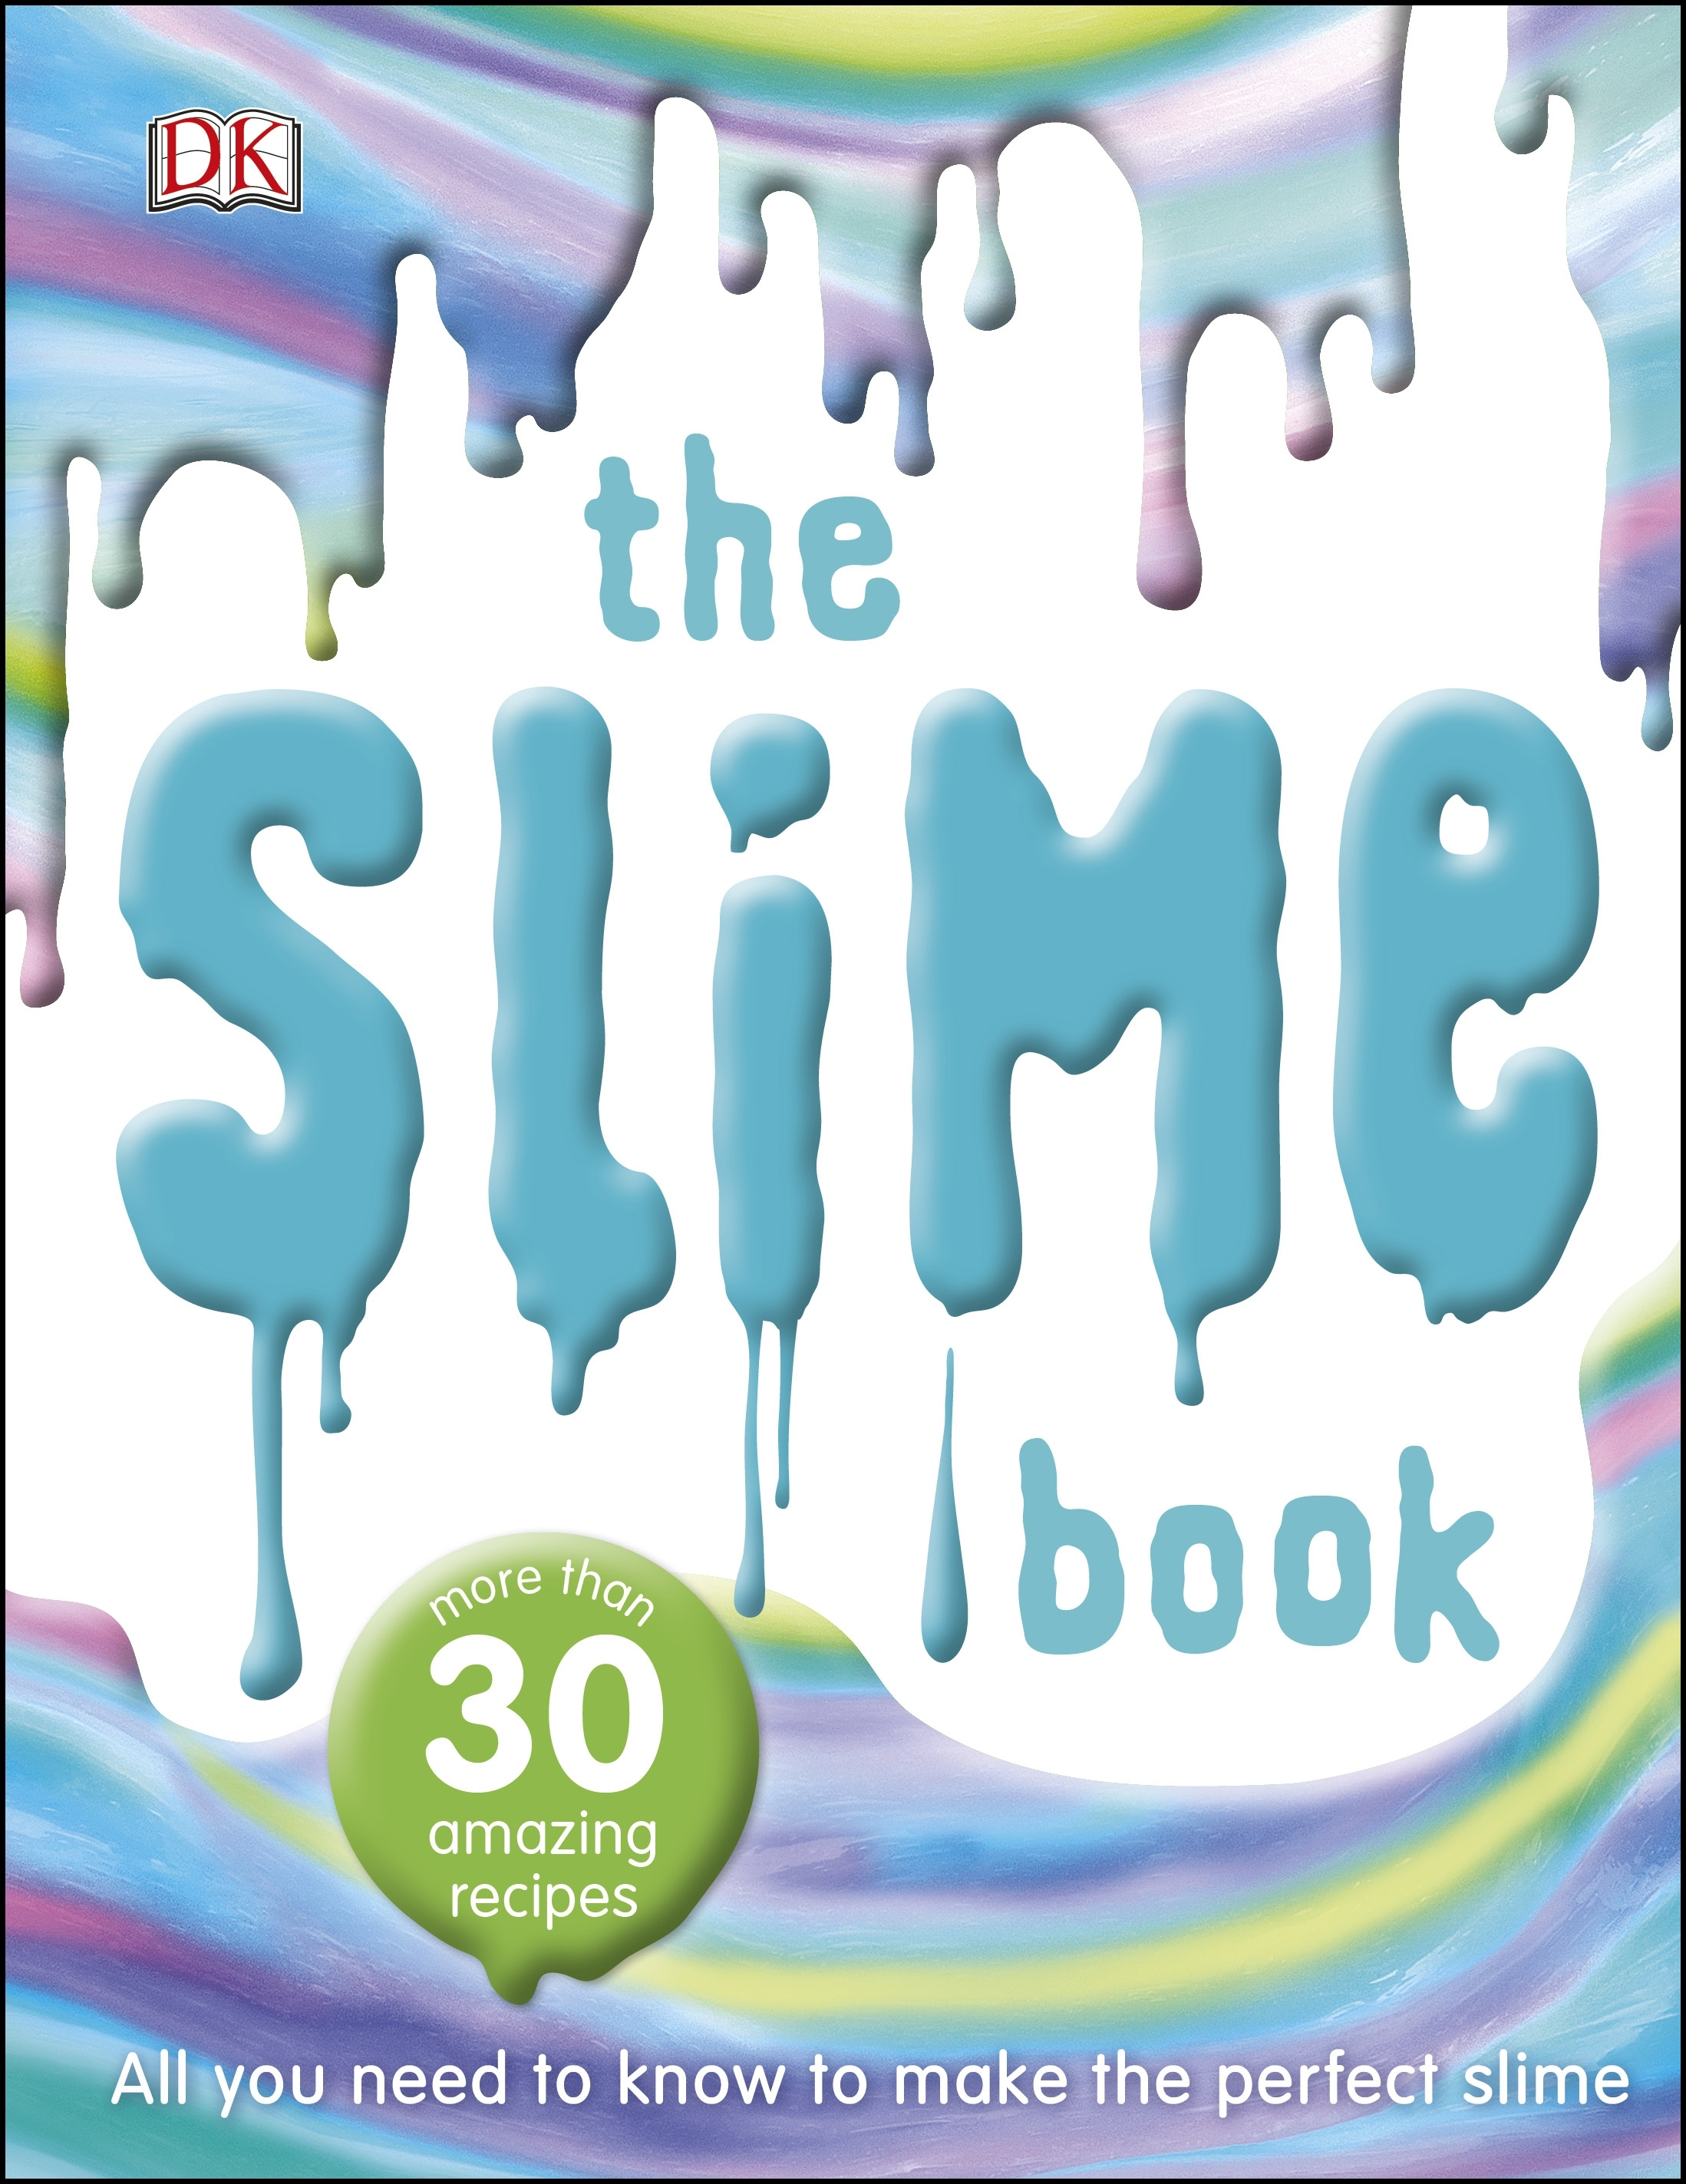 The slime book 2017 by dk penguin books new zealand the slime book 2017 ccuart Gallery